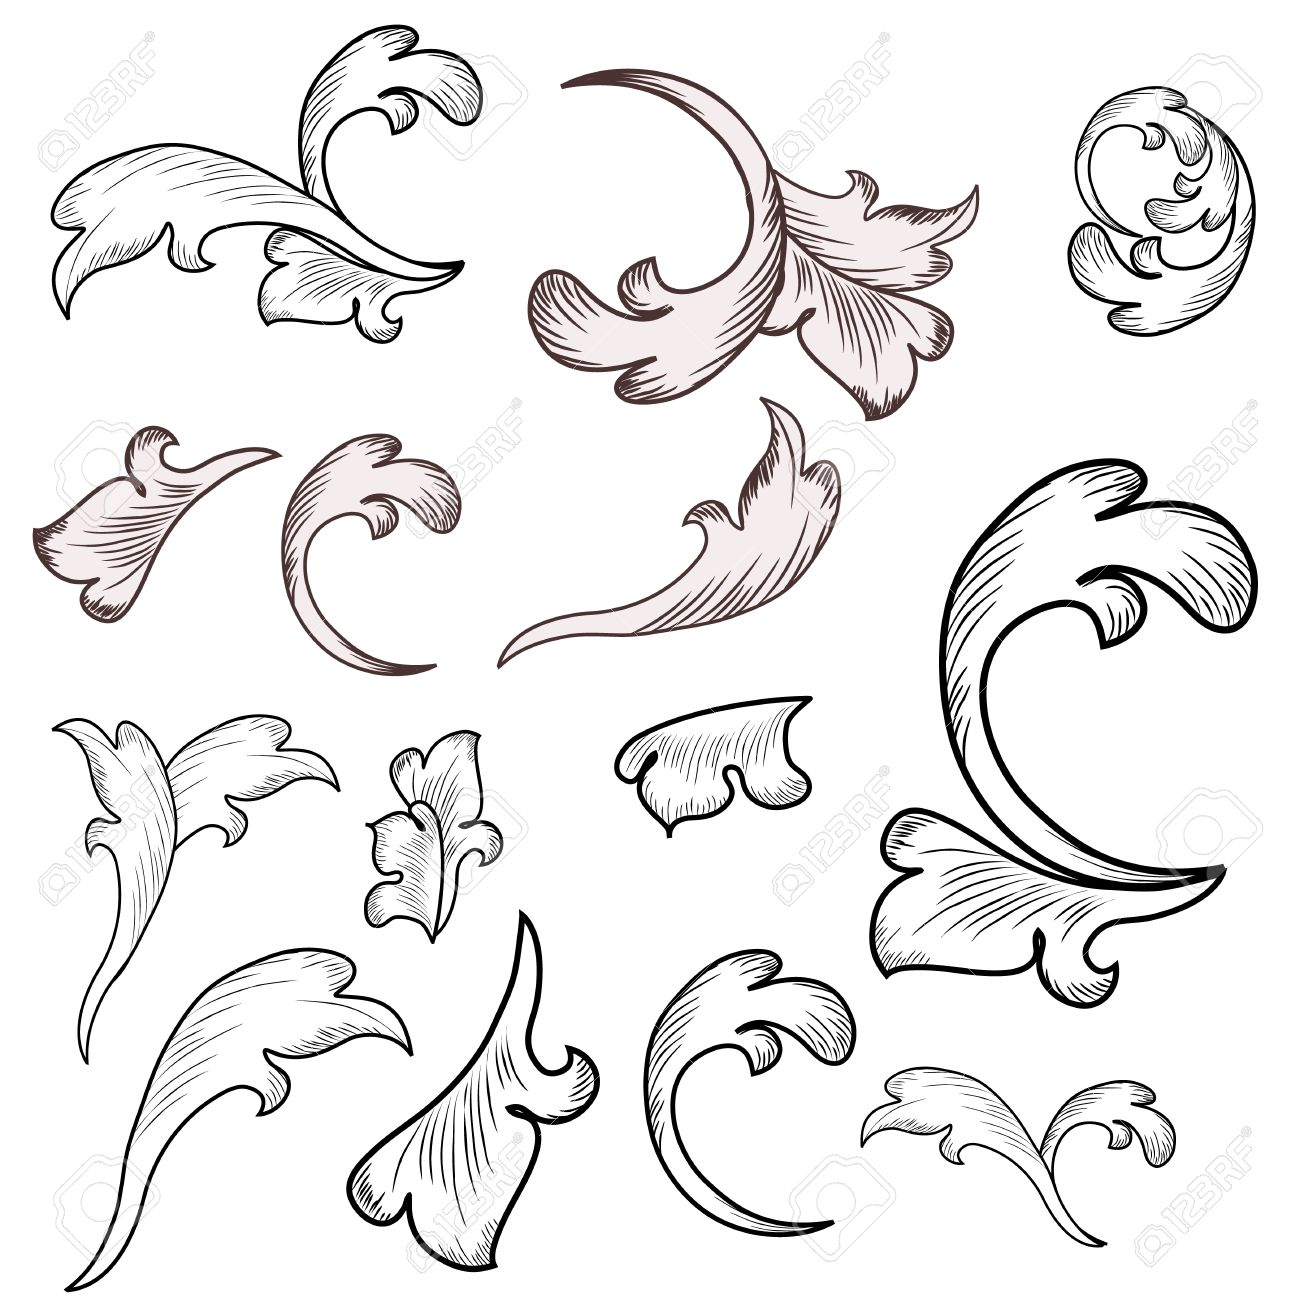 Victorian Design Elements baroque design elements royalty free cliparts, vectors, and stock